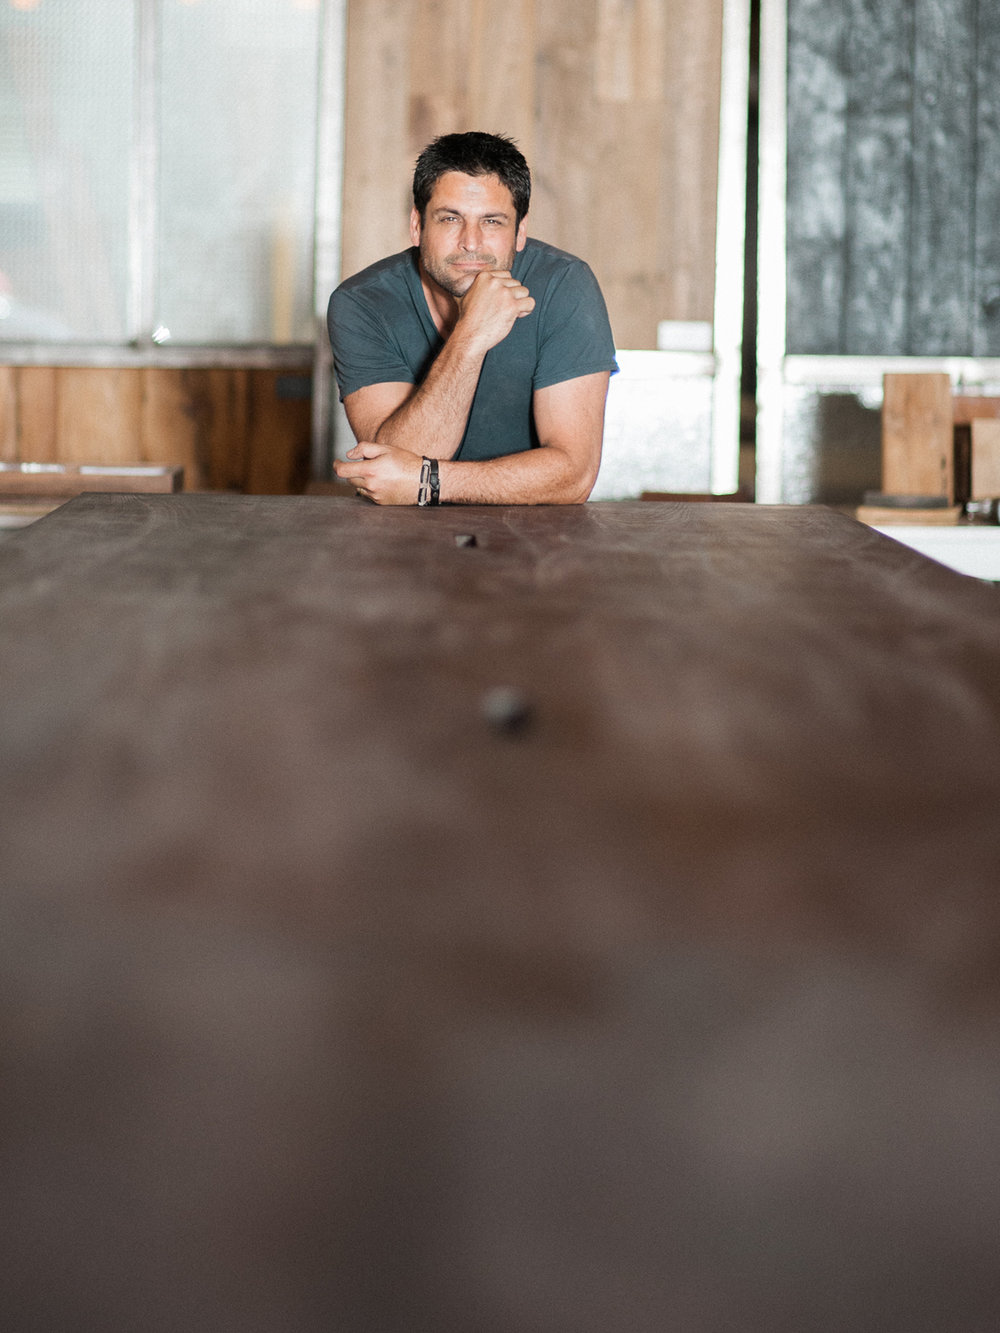 Mark Jupiter Designs DUMBO Brooklyn, NY custom board room table branding photo